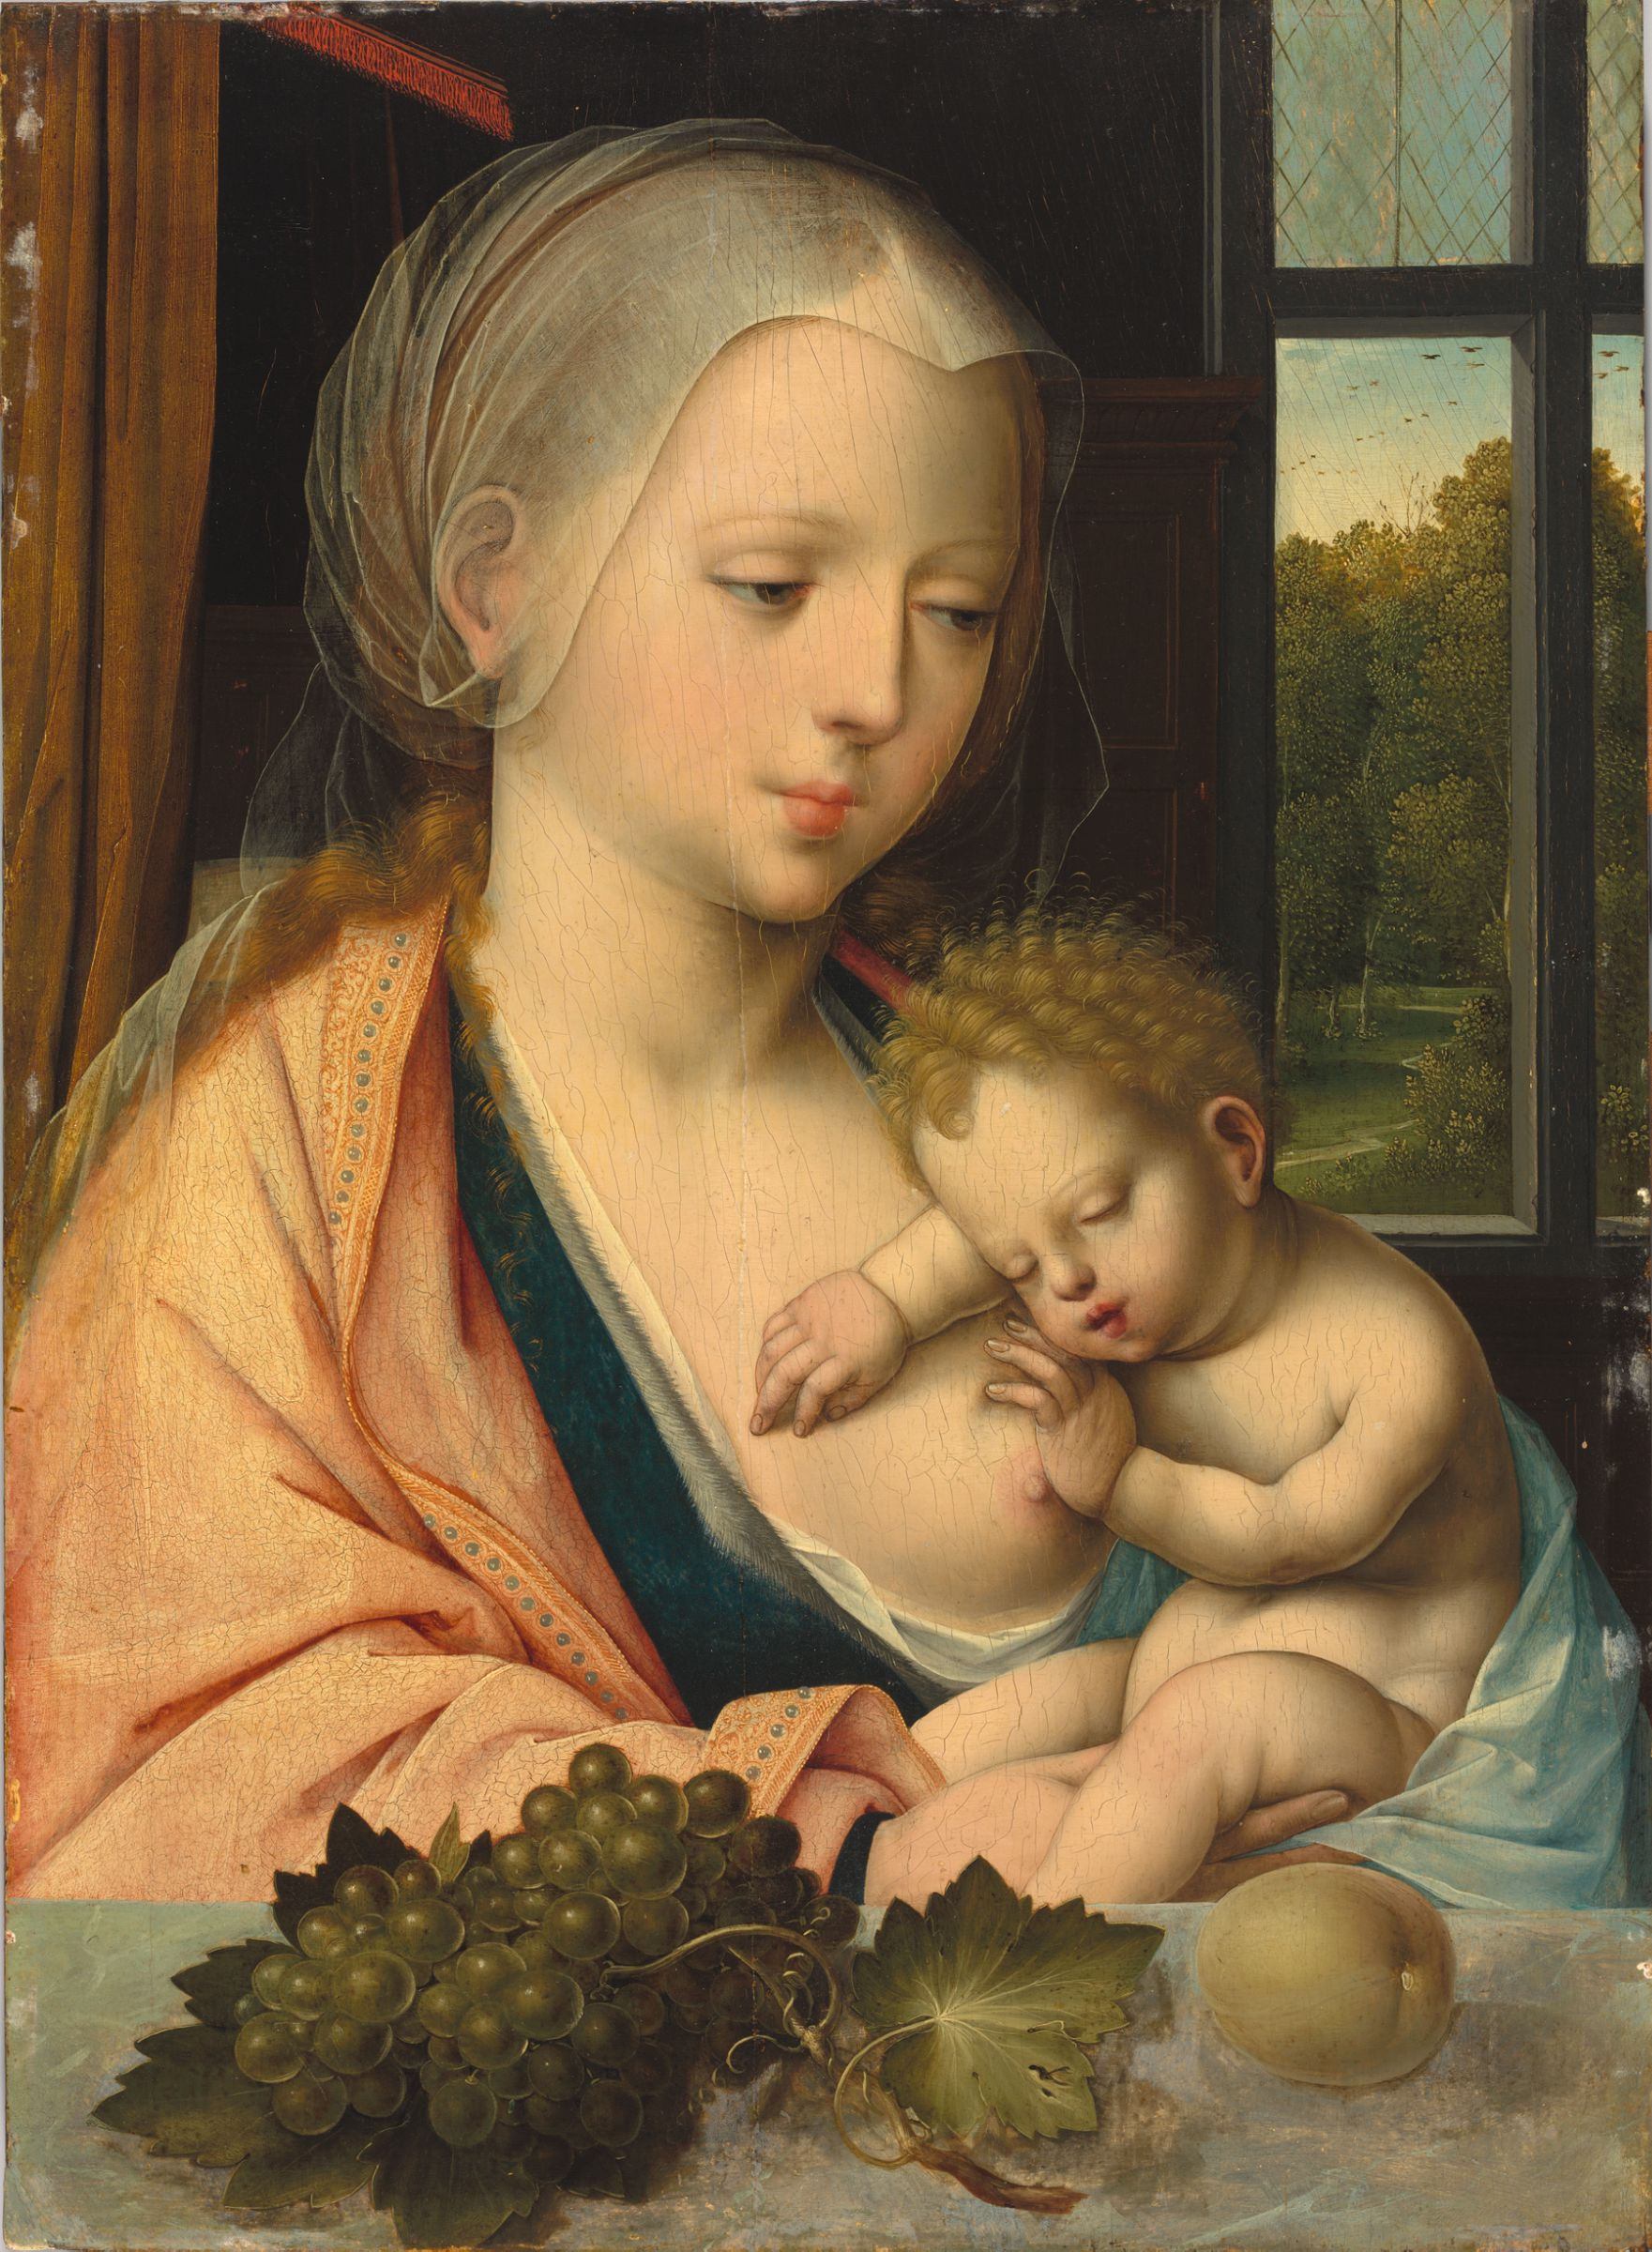 https://upload.wikimedia.org/wikipedia/commons/f/f5/Master_with_the_Parrot_-_Virgin_and_Child_%28Fogg_Museum%29.jpeg